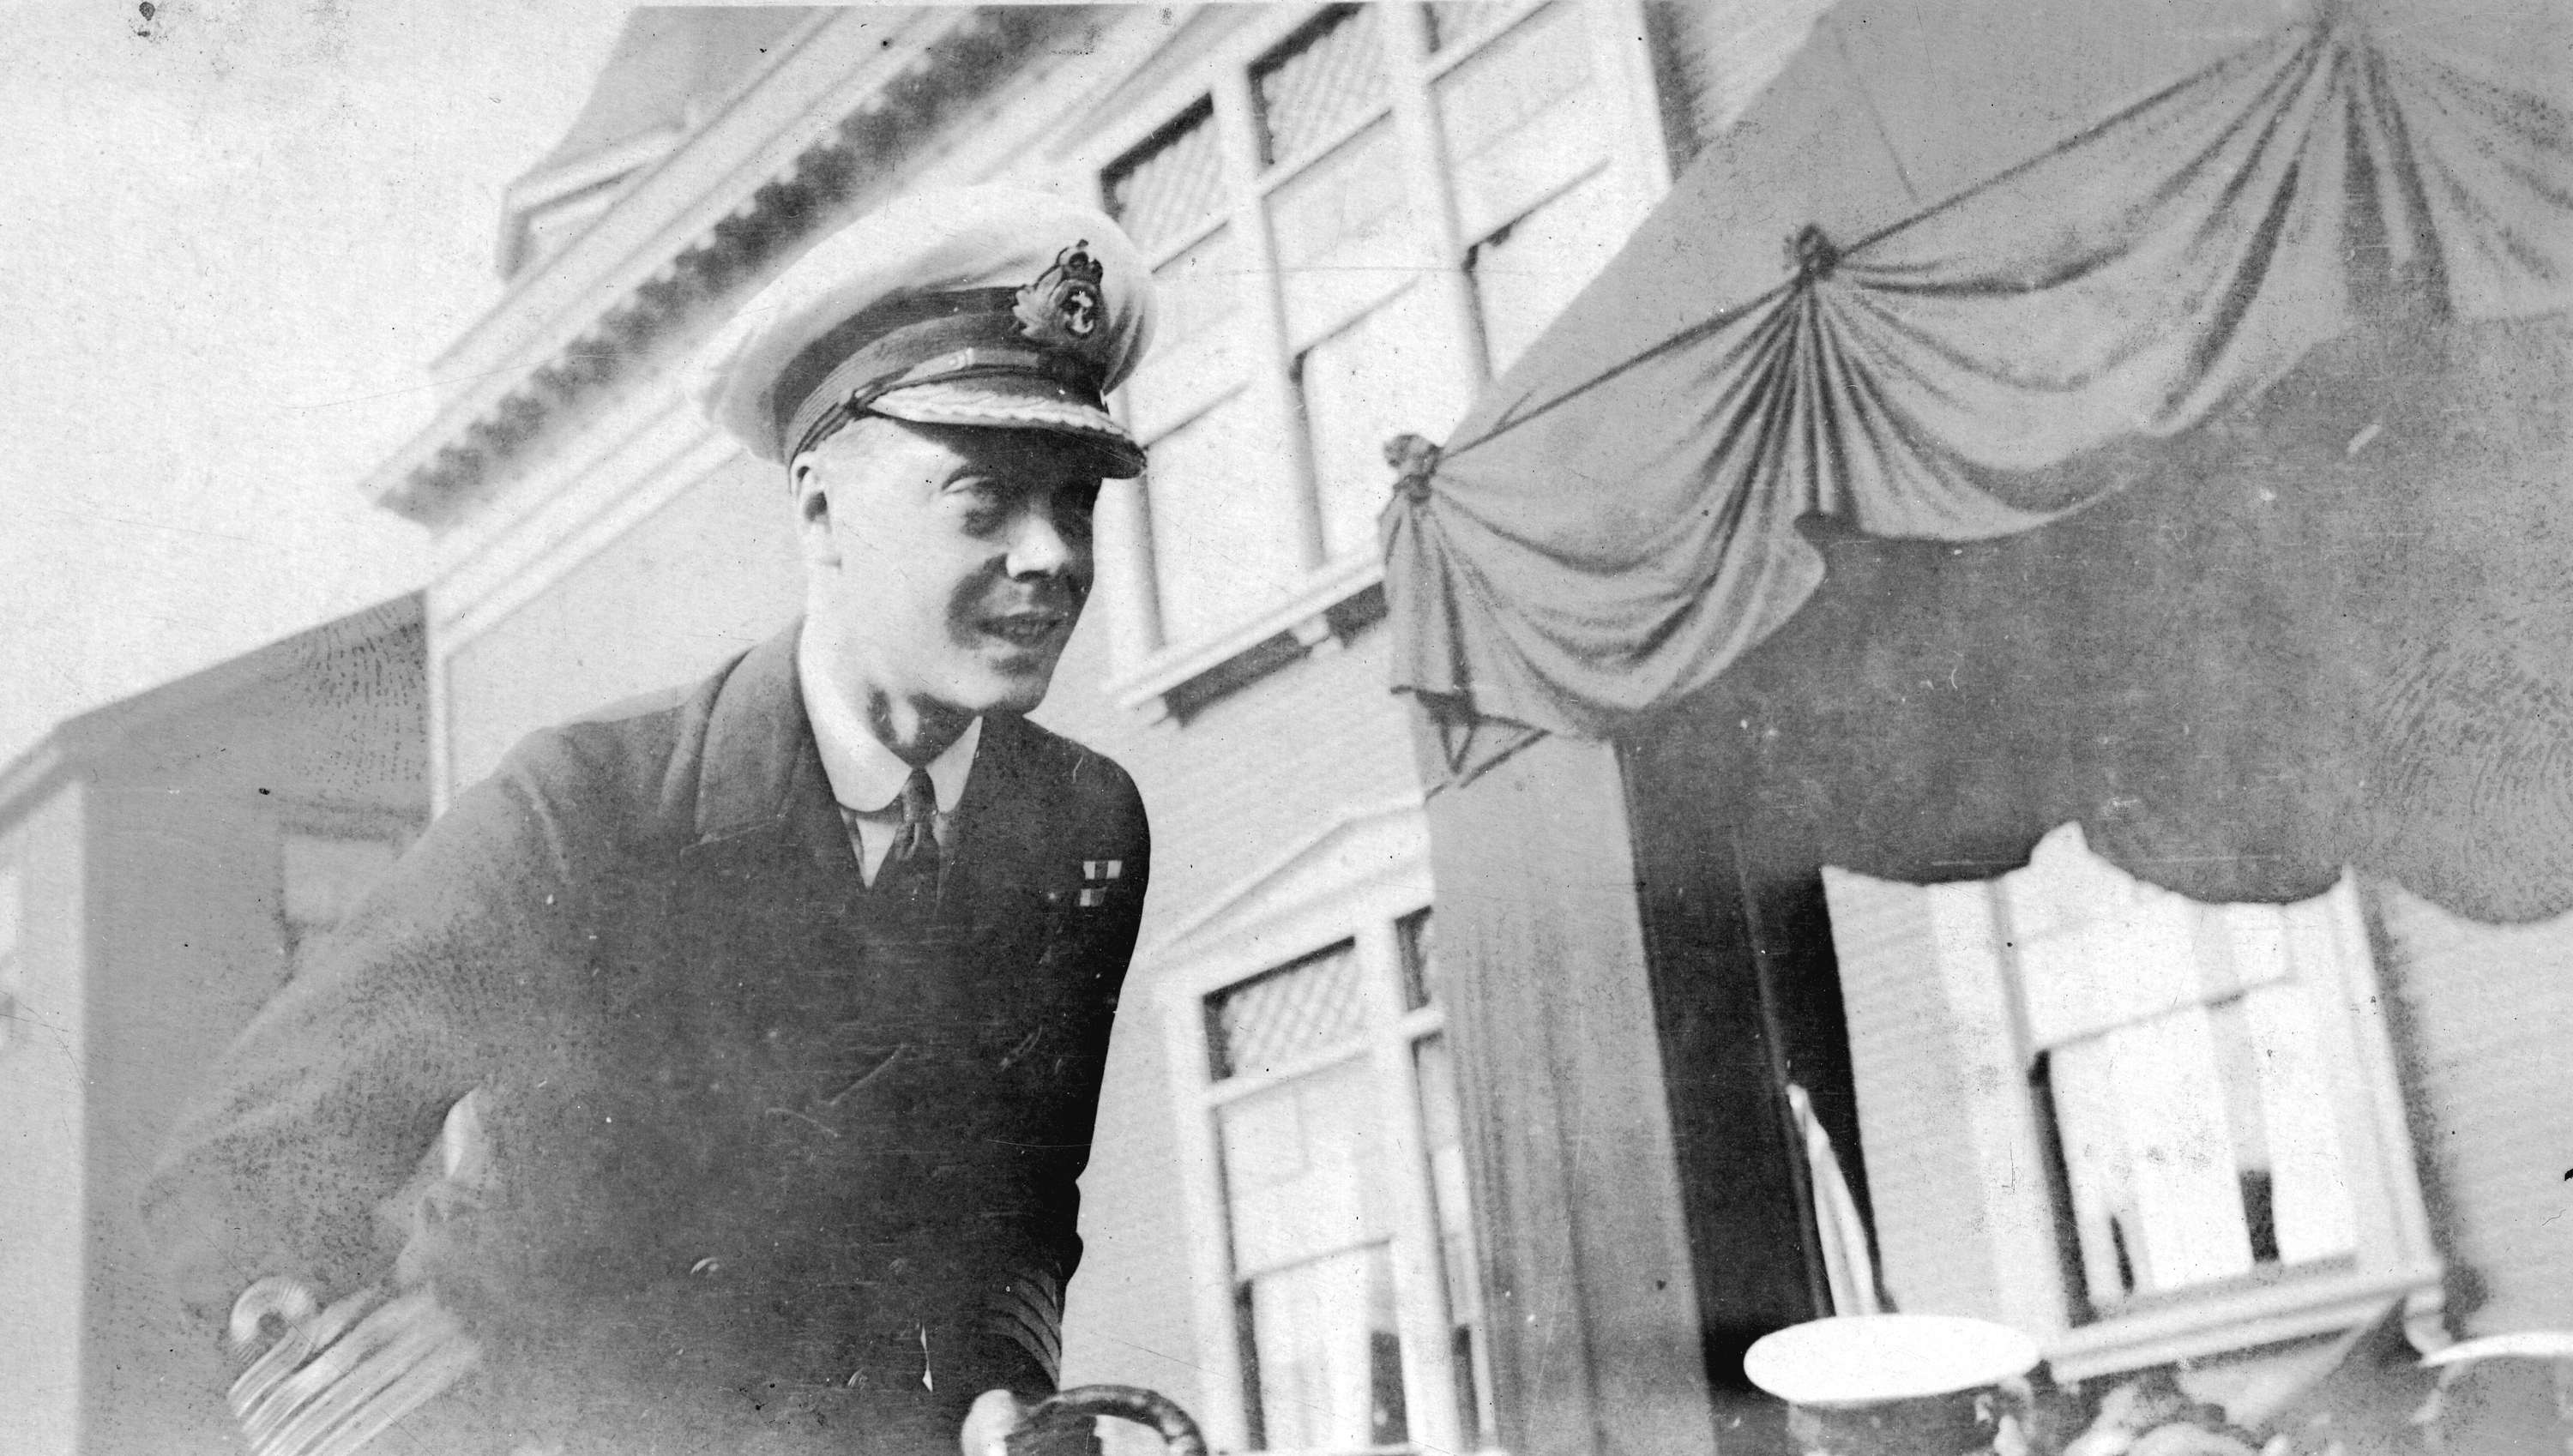 The Prince of Wales (later King Edward VIII) in uniform in Vancouver in 1919 (Public domain)